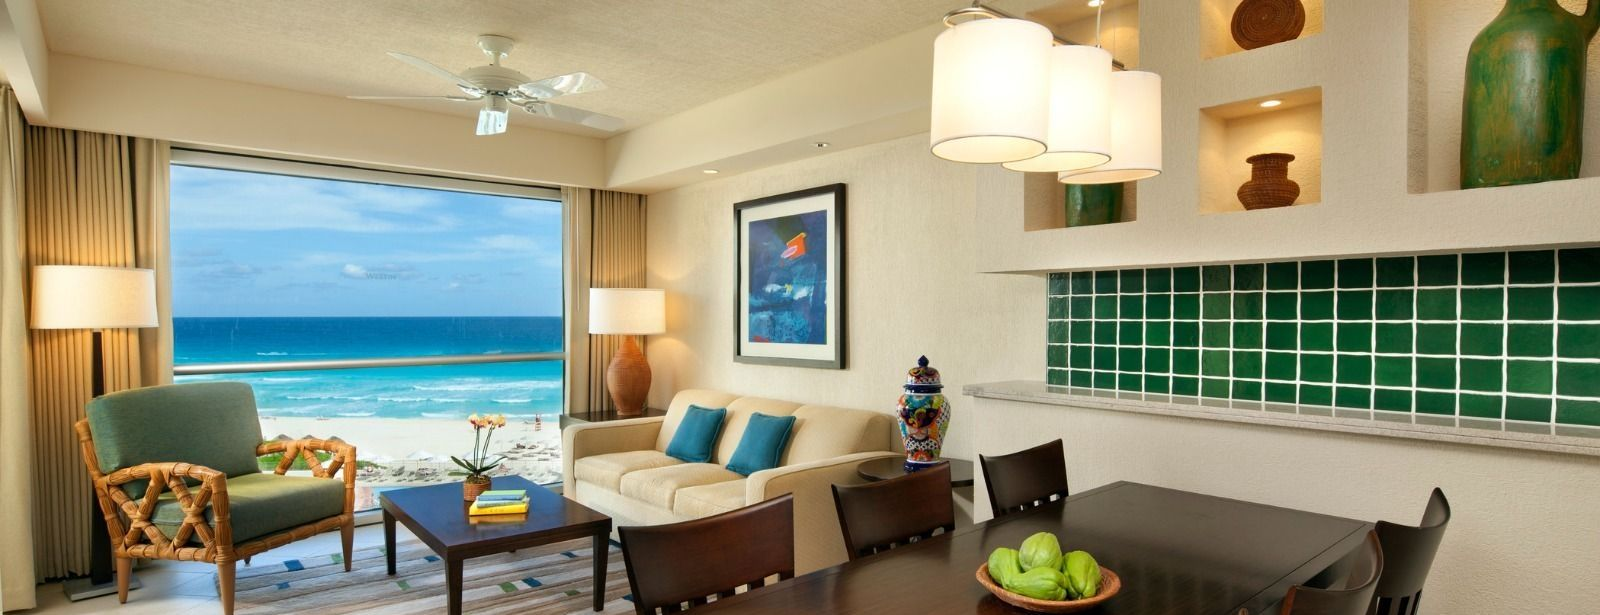 Two-Bedroom Villa - Westin Lagunamar Ocean Resort Villas & Spa